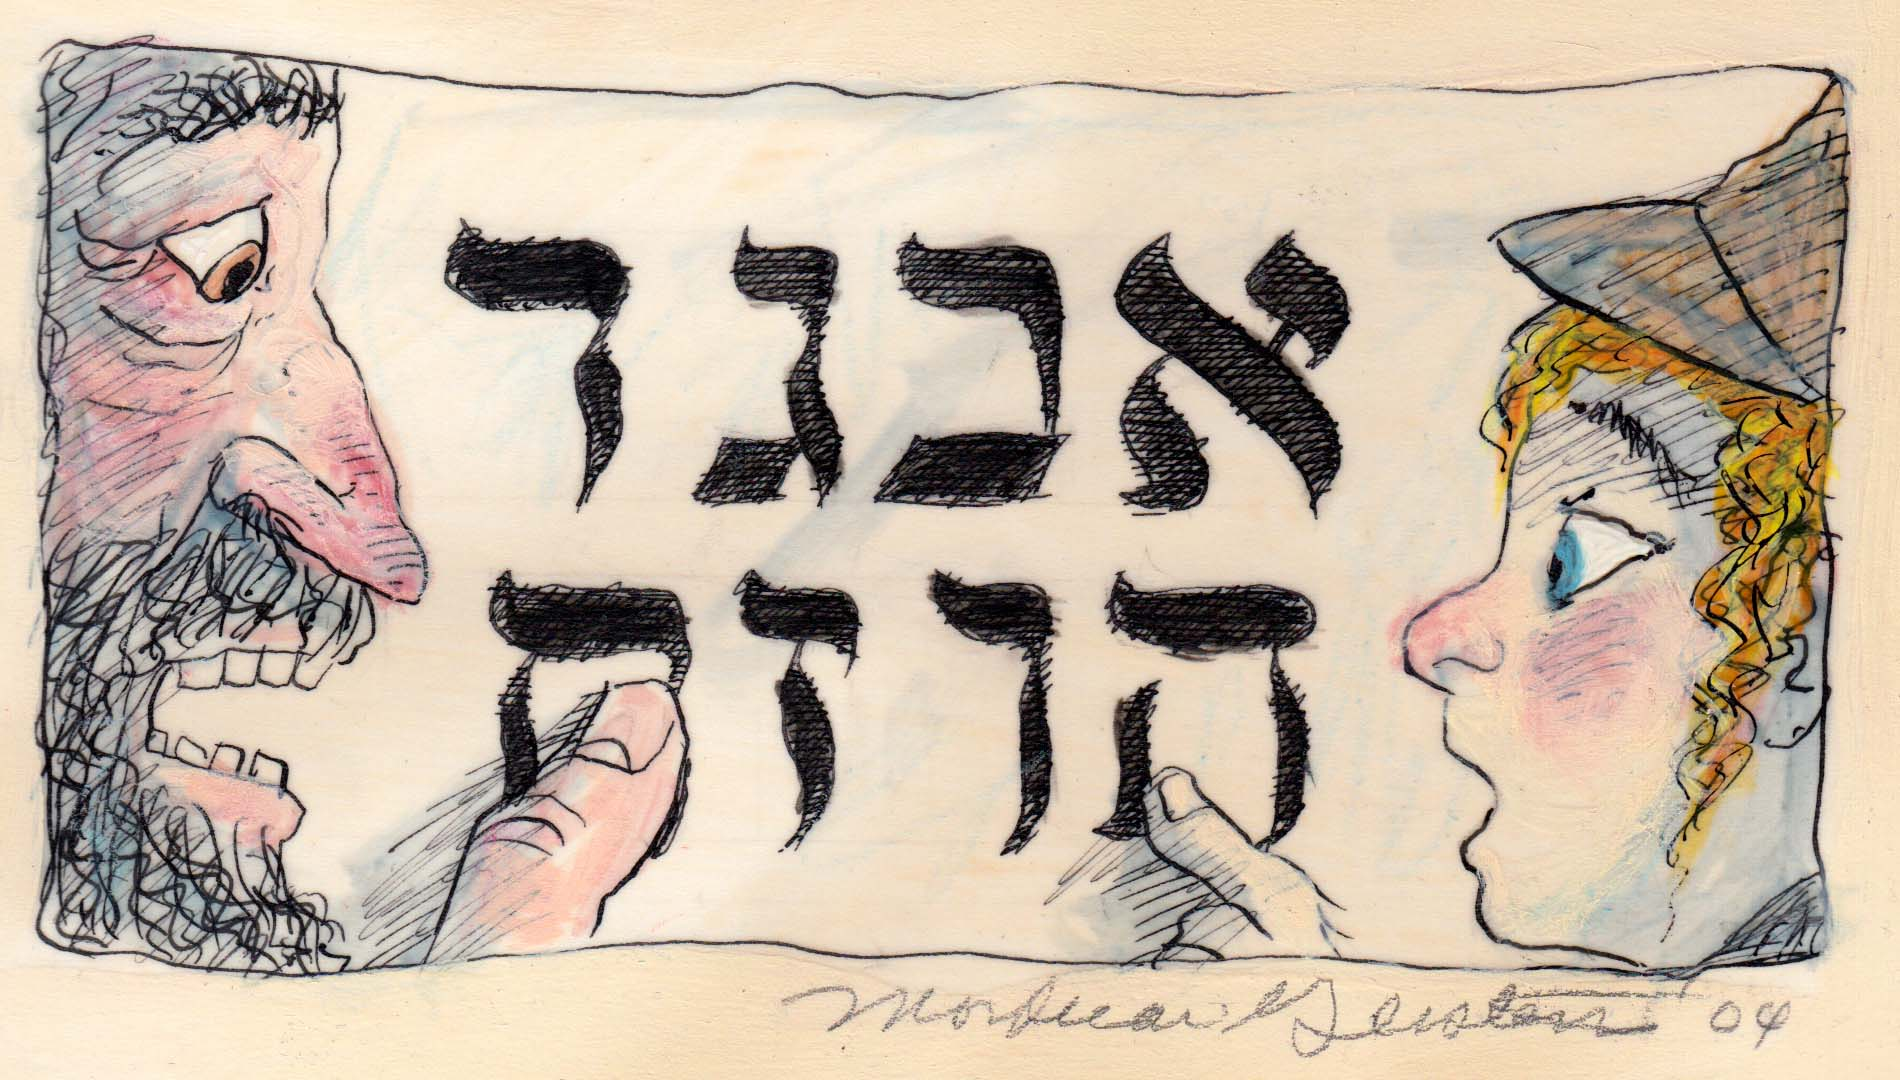 He Quickly Learned the Hebrew Alphabet